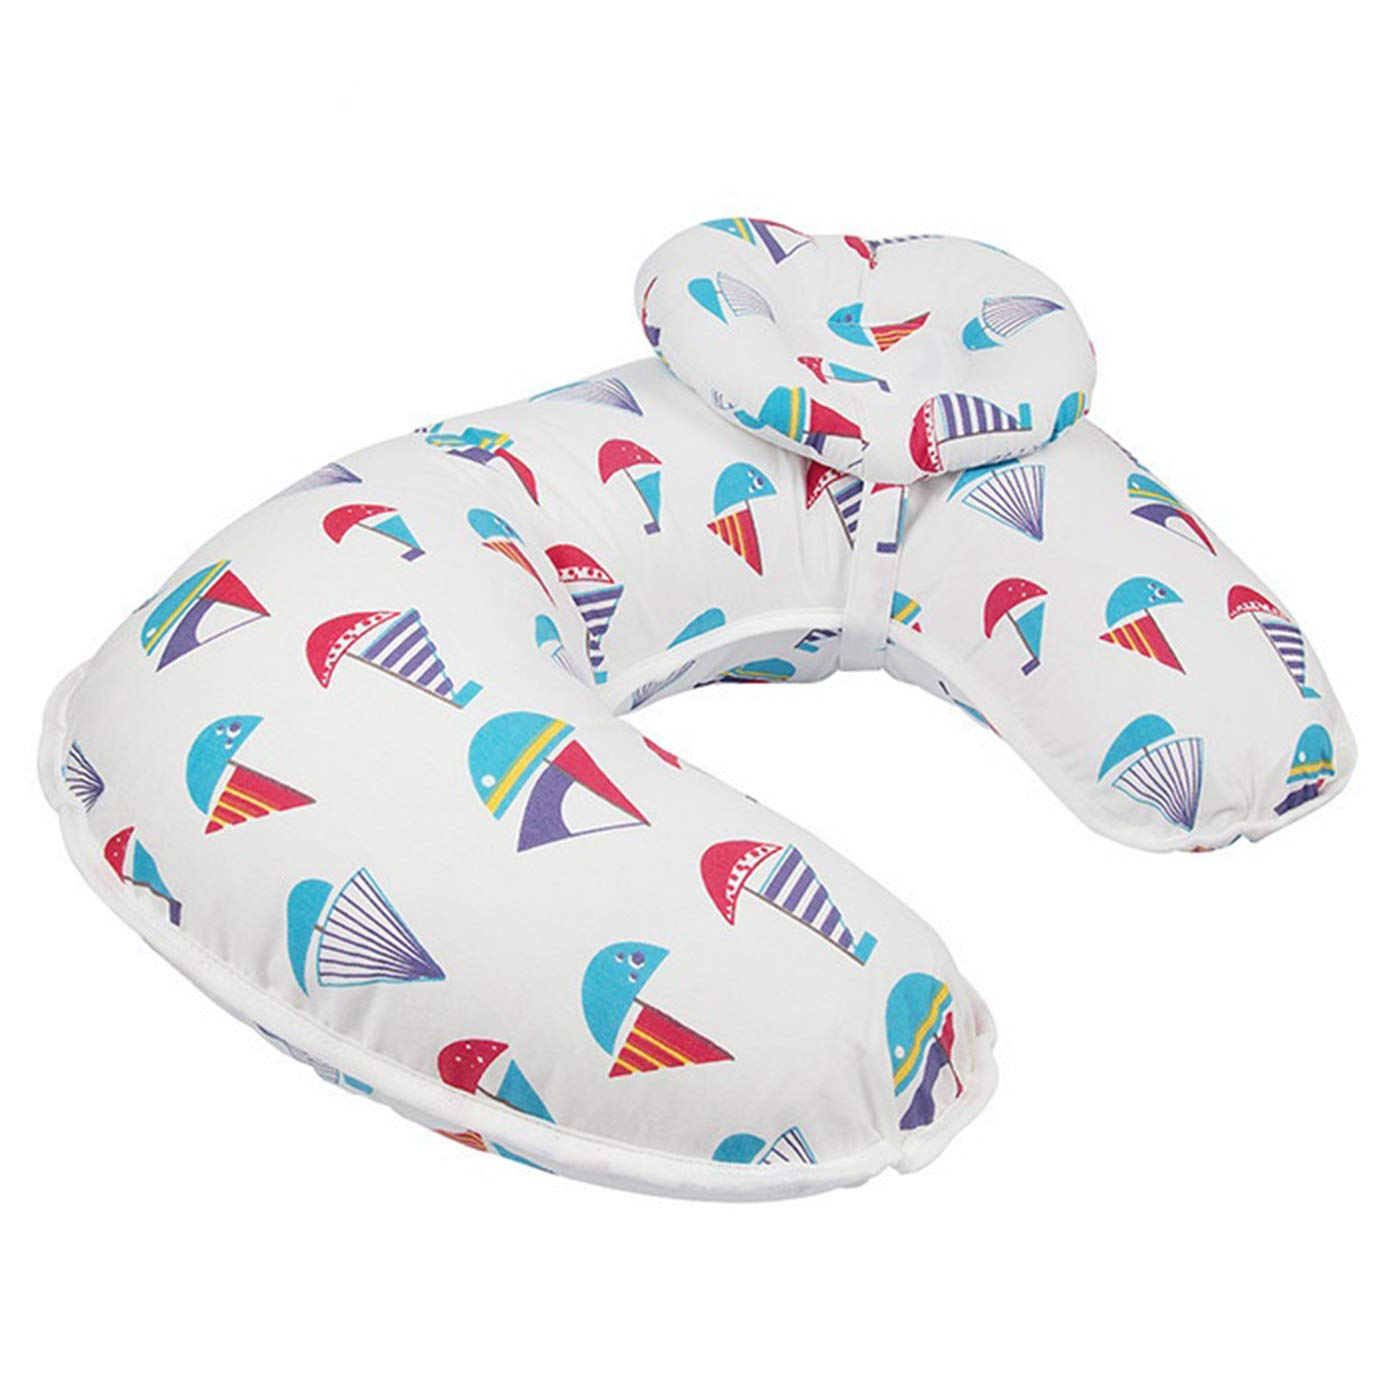 Borje New Design 45/°Angle Newborn Breastfeeding Adjustable Pillow for Babies Nursing Baby Lounger Red Sailboat